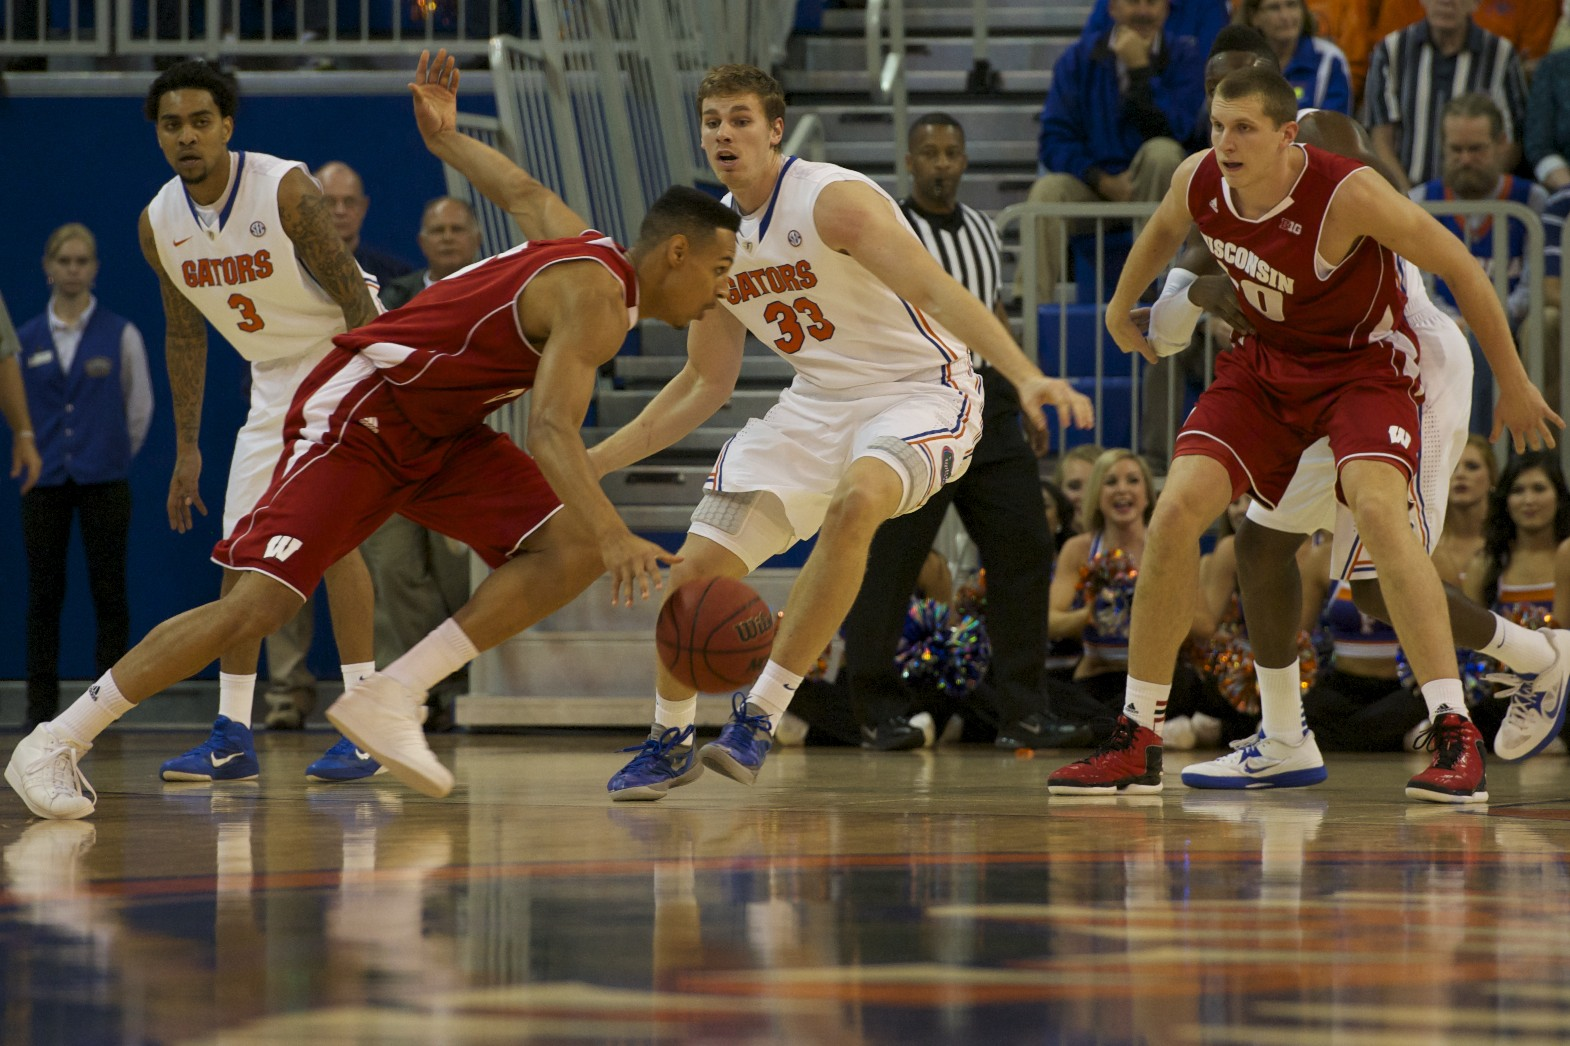 Wisconsin player attempts to pass Florida defender Erik Murphy (33) and put points on the board for his team in the first half of Wednesday's game.